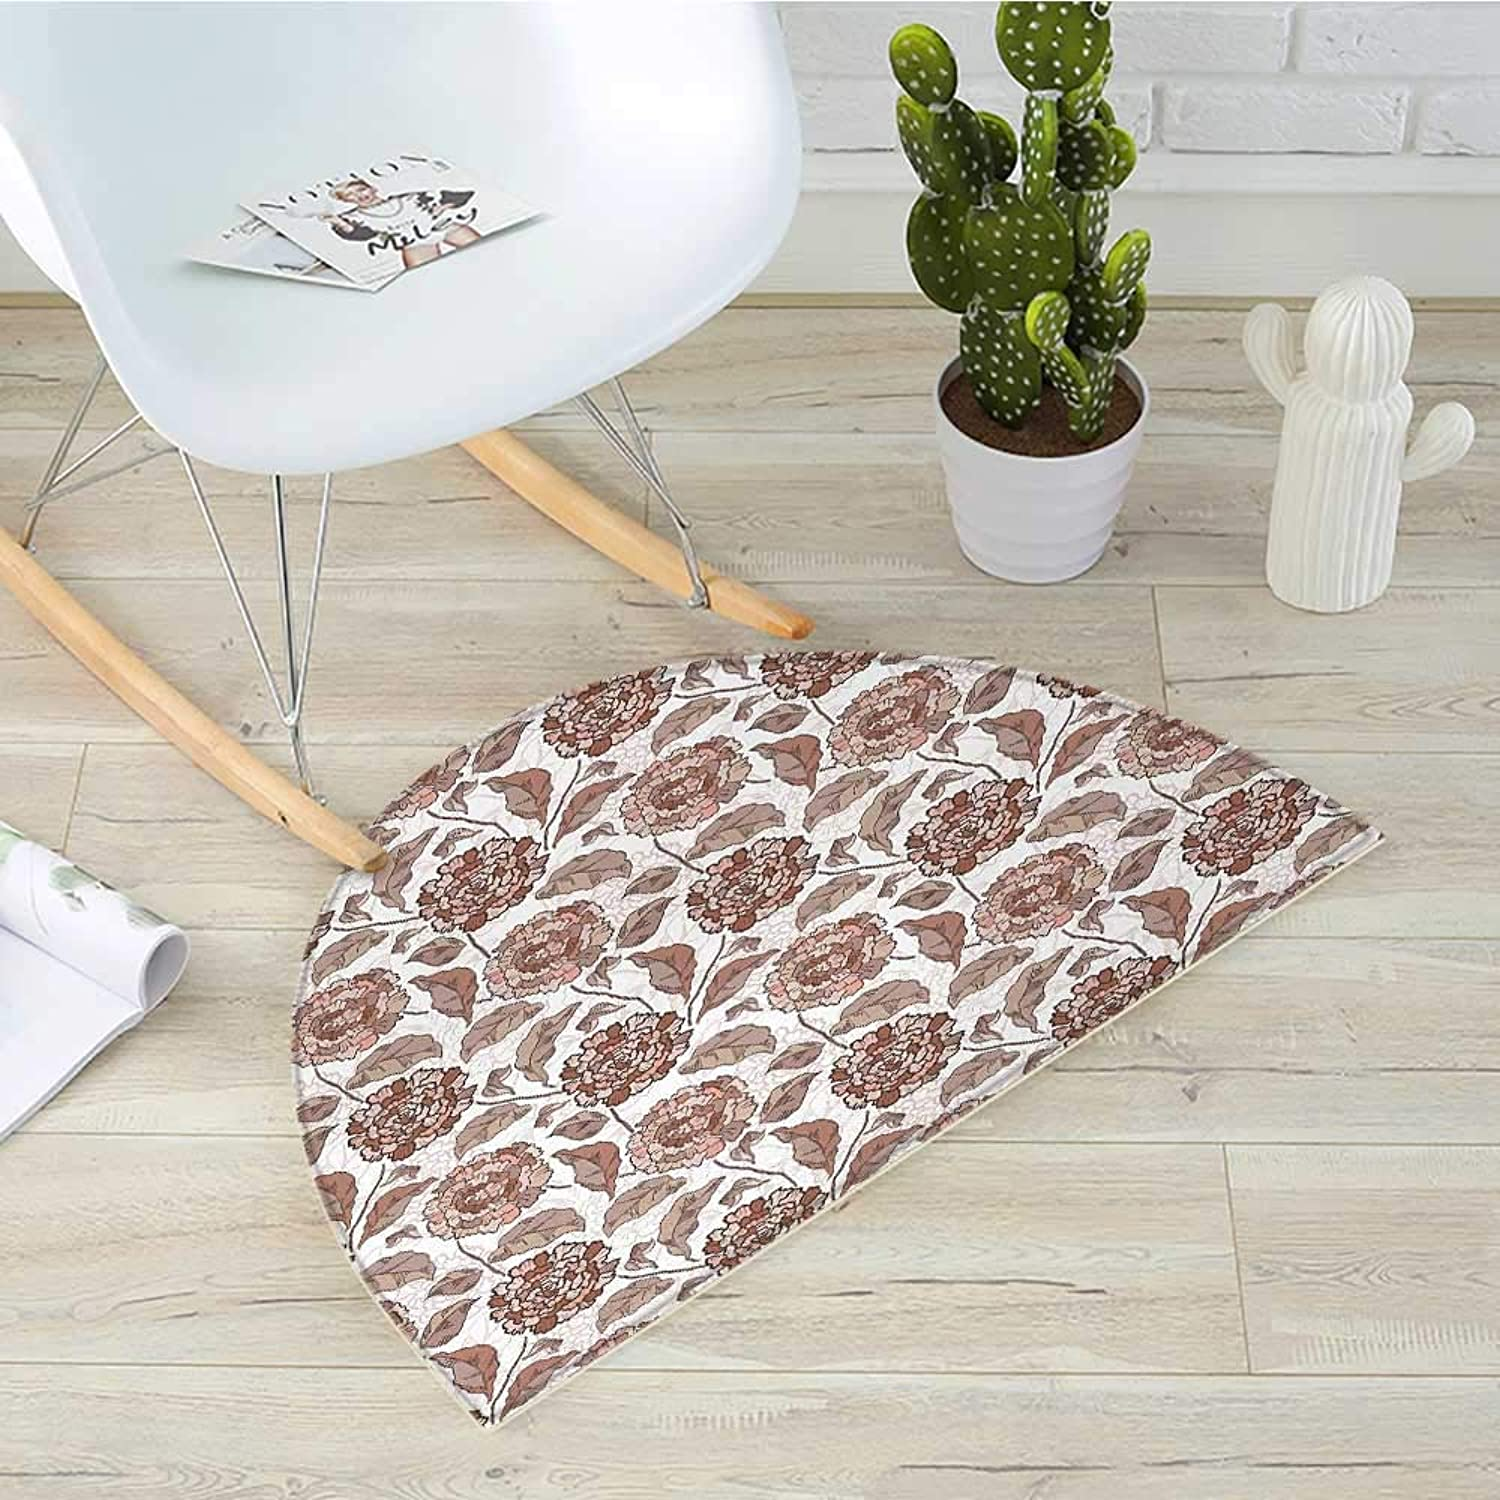 Floral Semicircle Doormat Earth Tones Blossom Chrysanthemums Cottage Foliage Ornamental Pattern Halfmoon doormats H 43.3  xD 64.9  Warm Taupe Umber bluesh